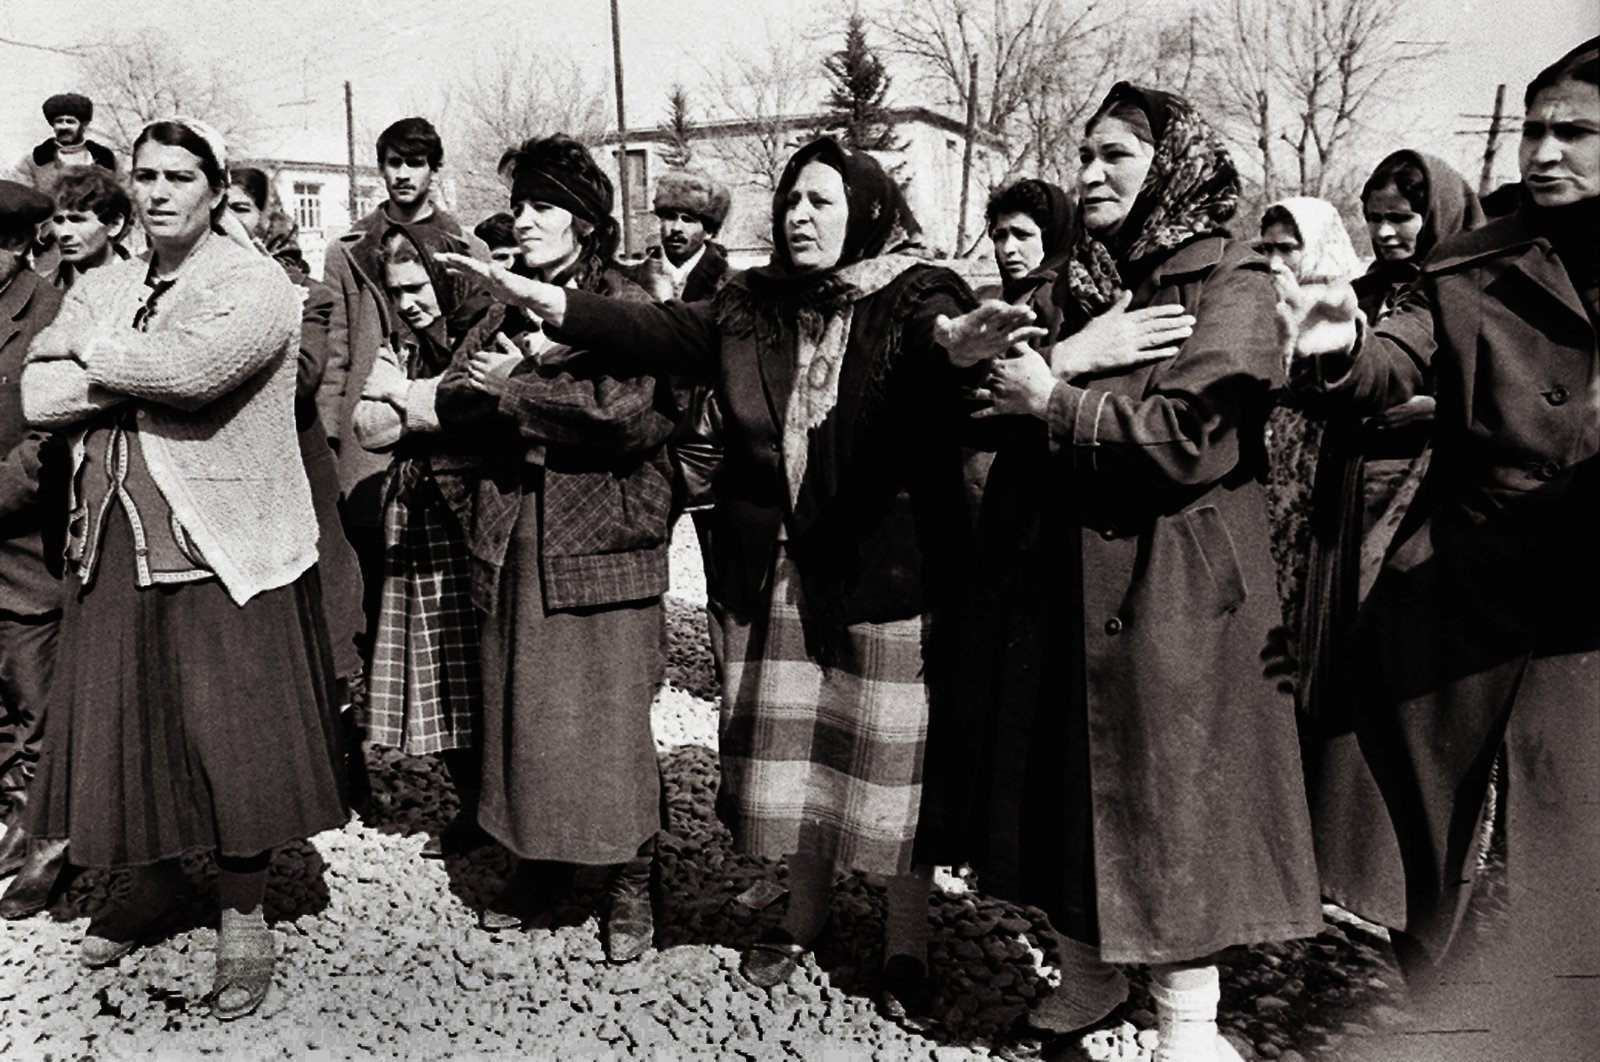 An archive photo shows people grieving for the massacre of ethnic Azerbaijanis by Armenians in the town of Khojaly, Nagorno-Karabakh, Azerbaijan, February 1992. (AA Photo)